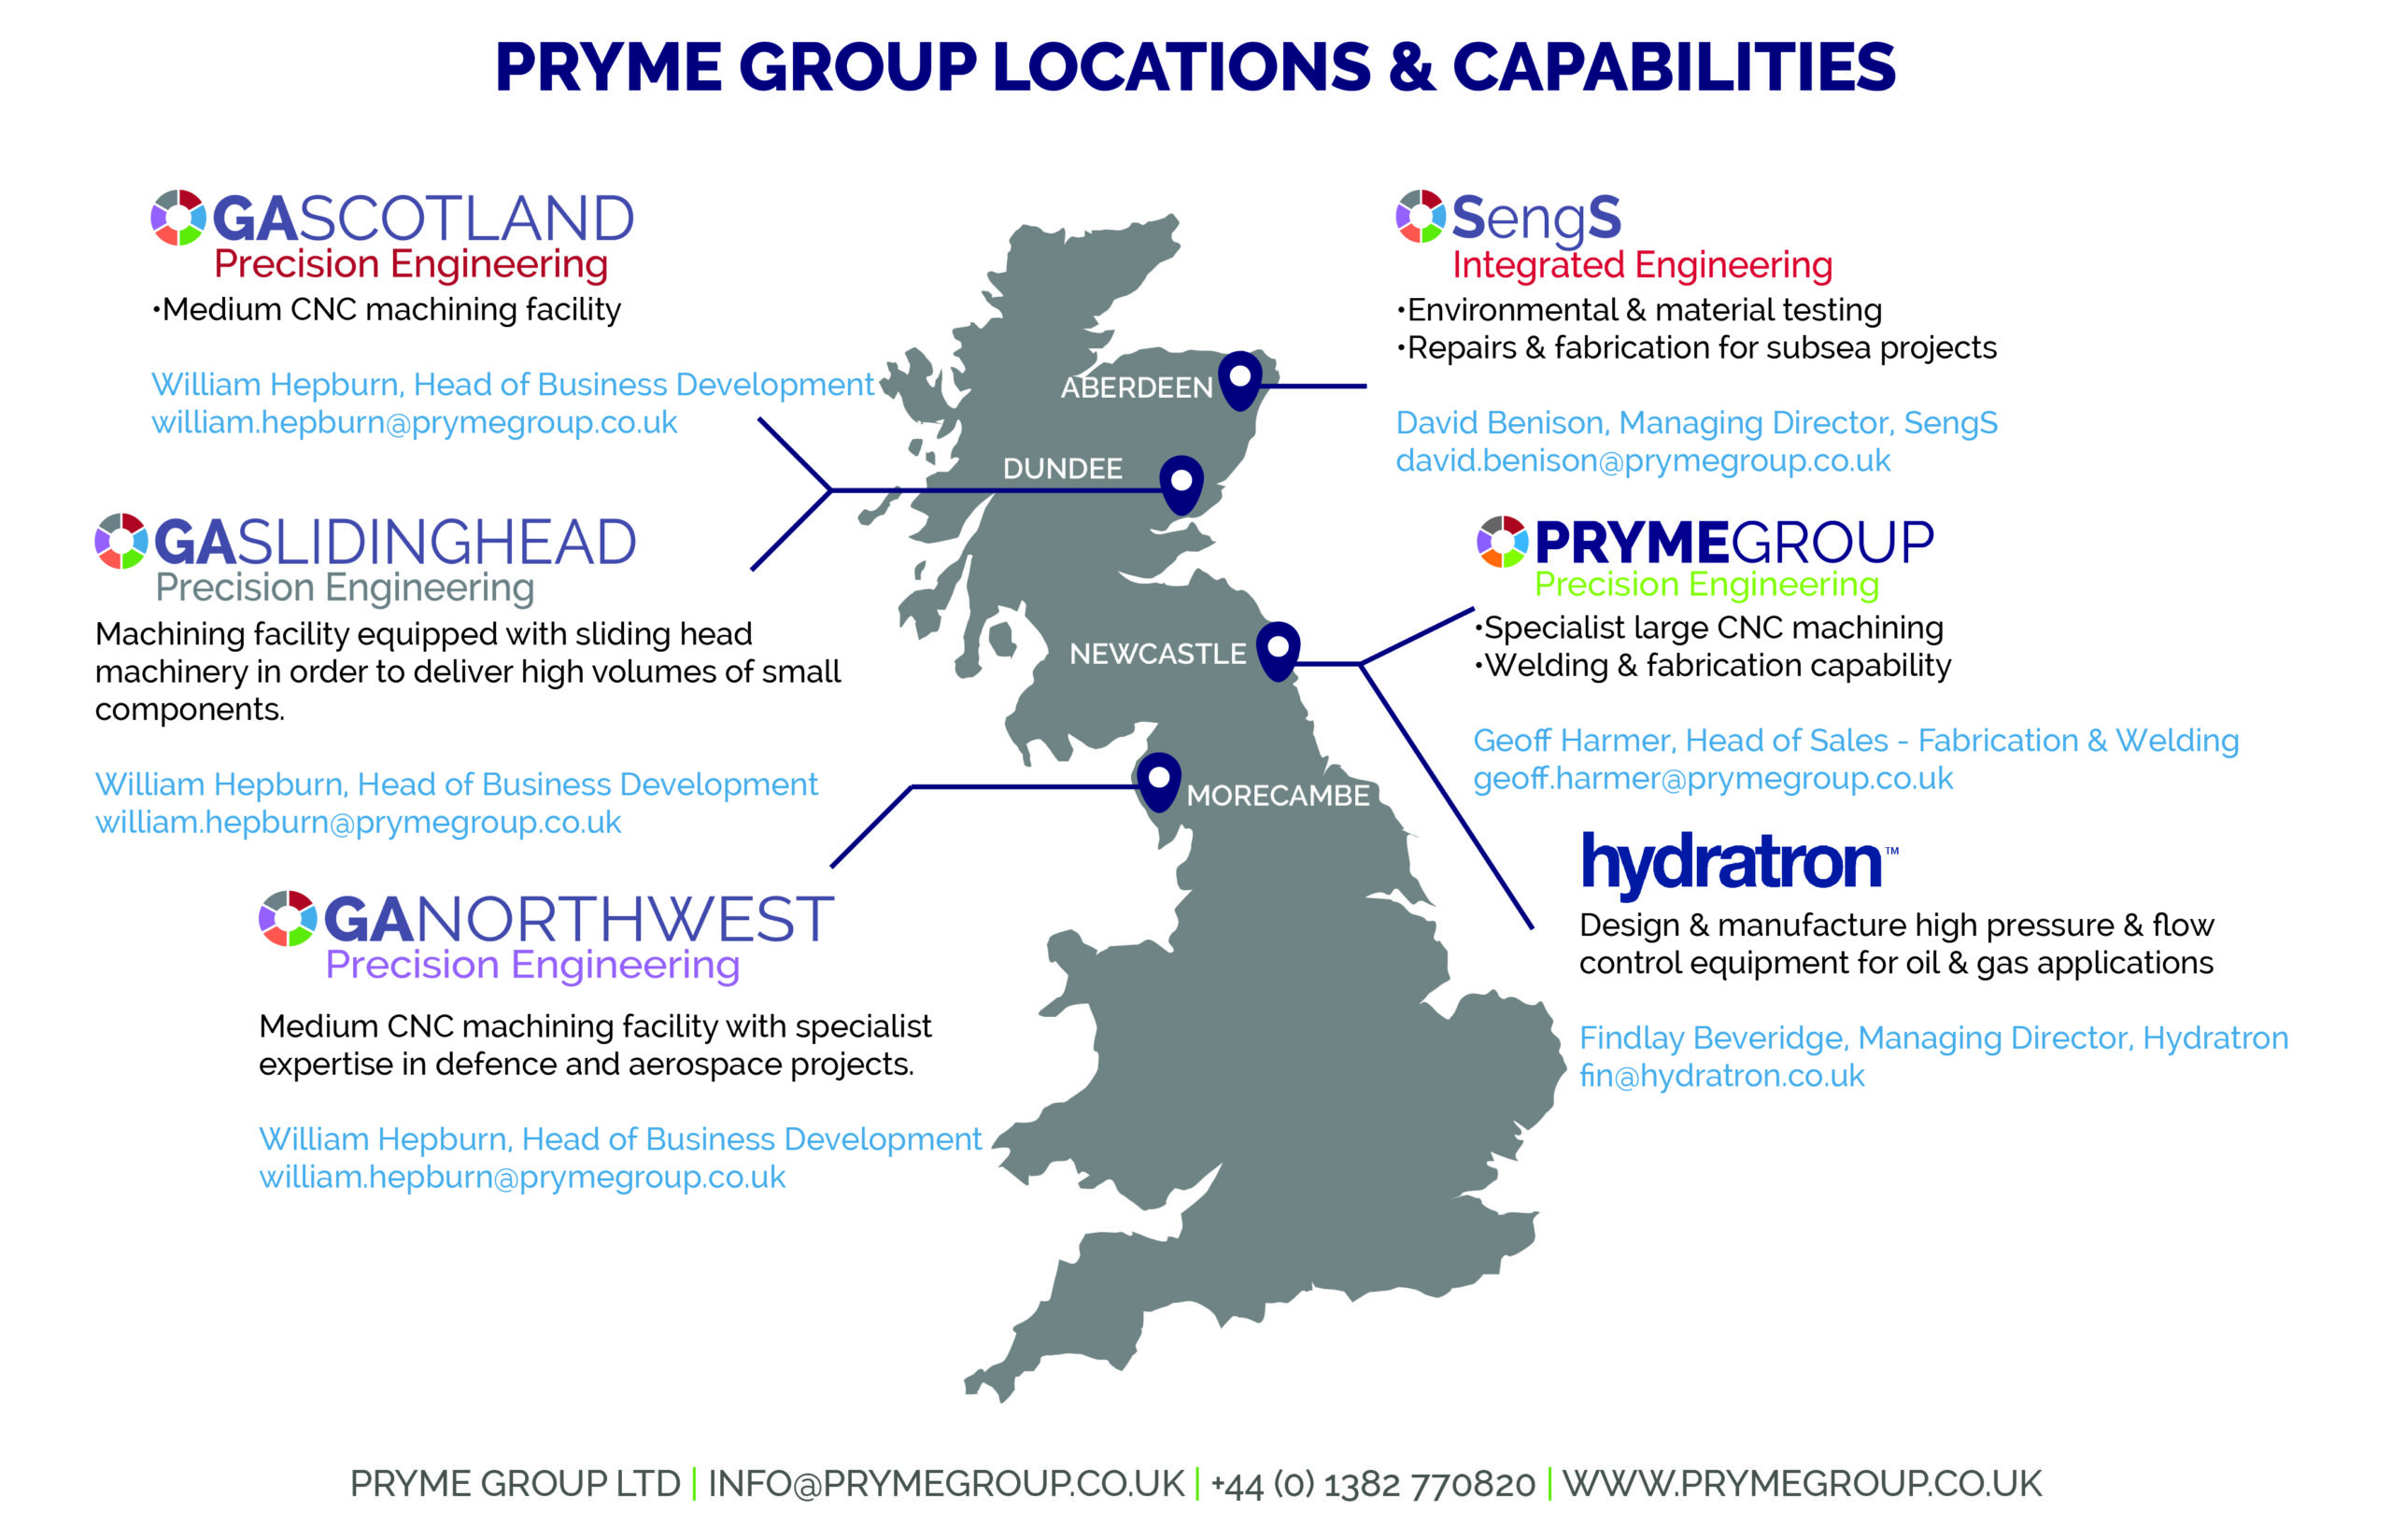 Pryme-Group-Capability-Map